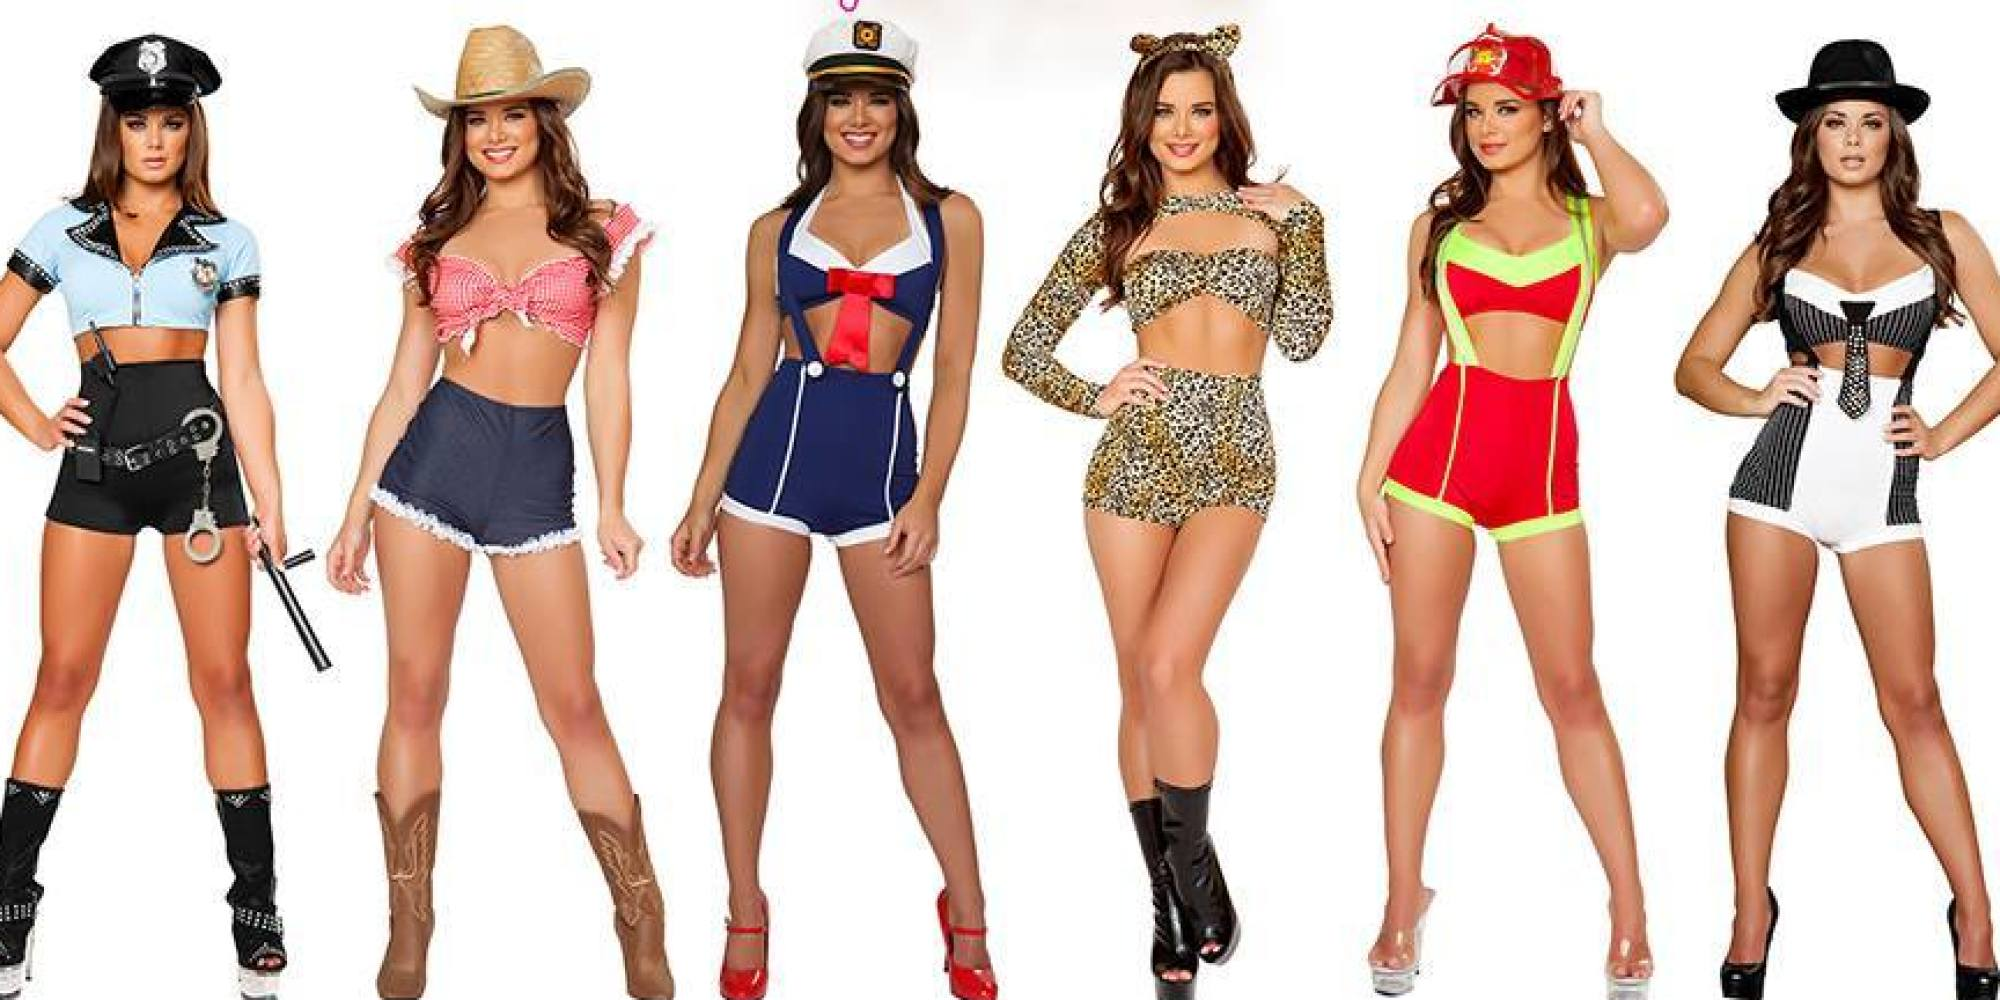 sc 1 st  HuffPost & A Brief History of Sexy Halloween Costumes | HuffPost